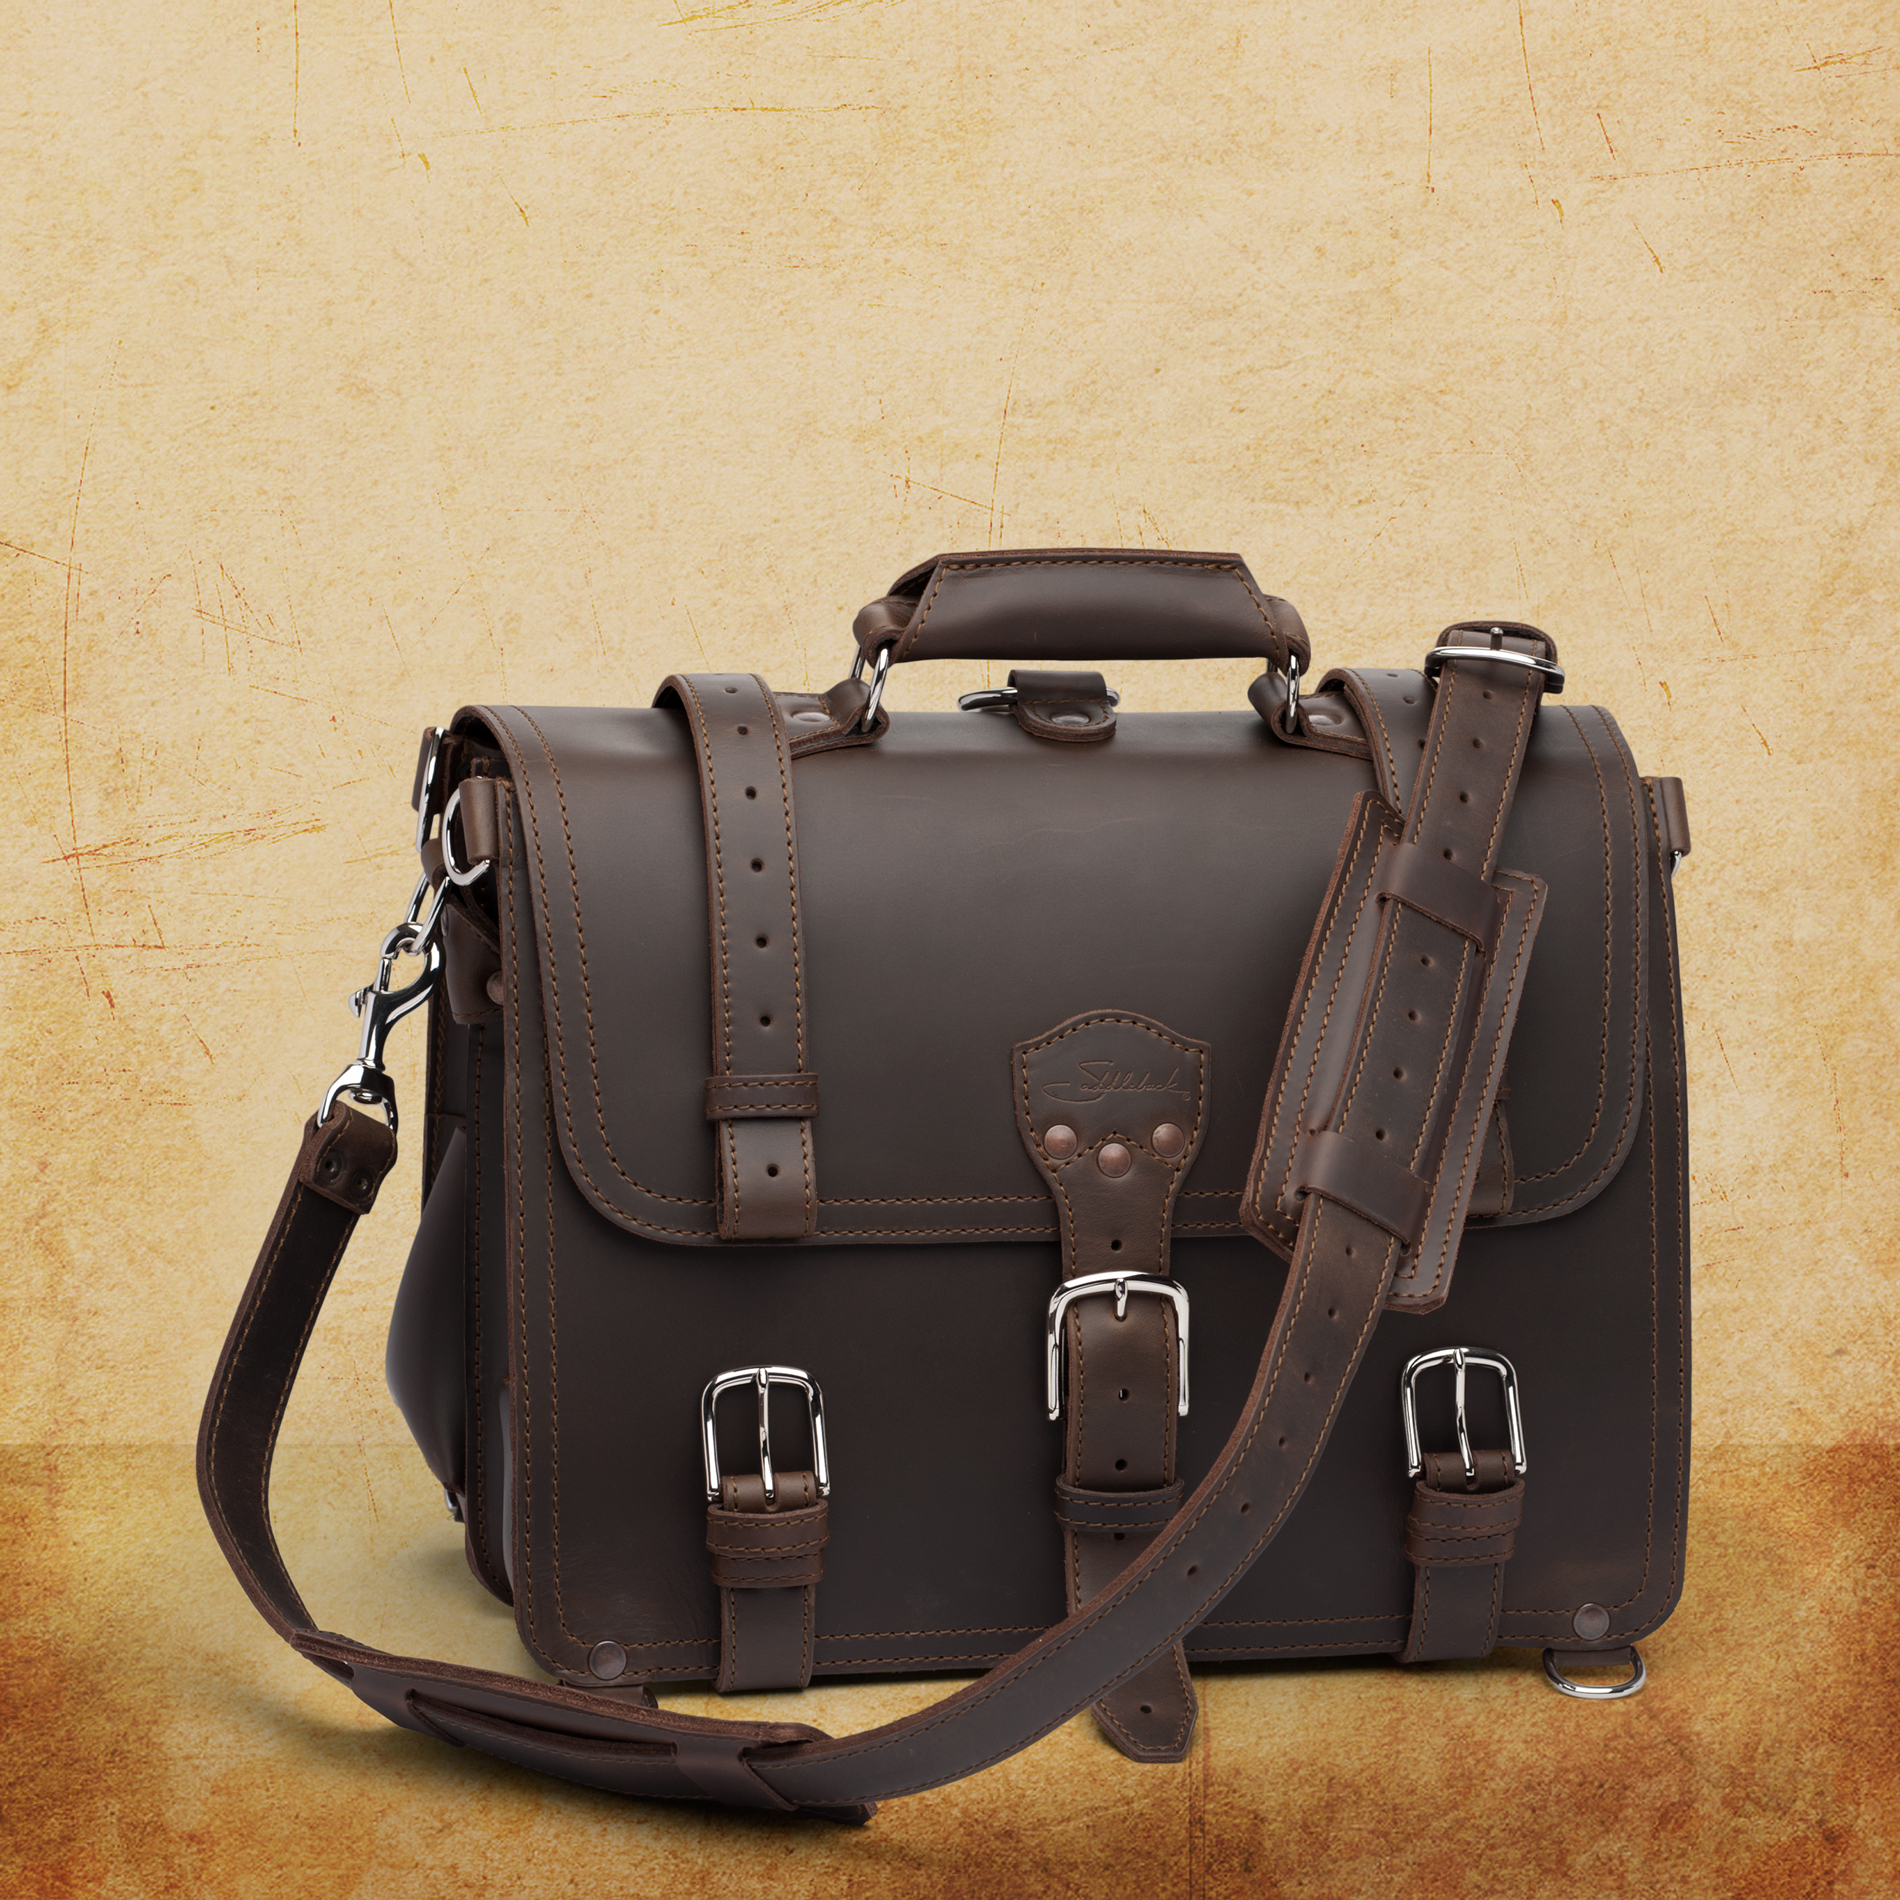 http://media.saddlebackleather.com/Products/Business-Bags/CLC-BC/CLC-BC-LG-DCB-SLC01B-1900.jpg